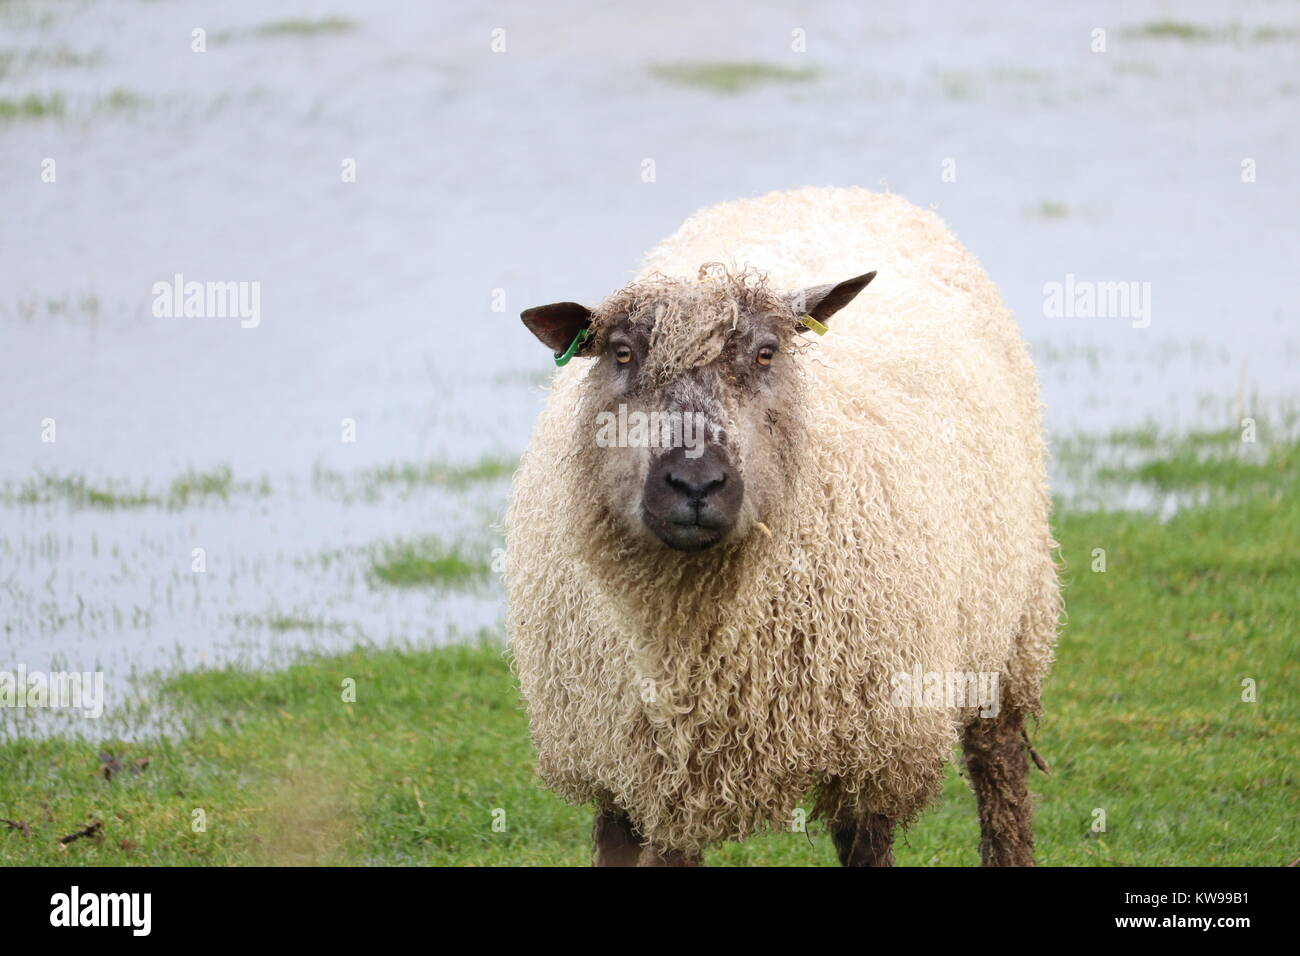 Woolly sheep thick fur close up in a field looking straight ahead - Stock Image